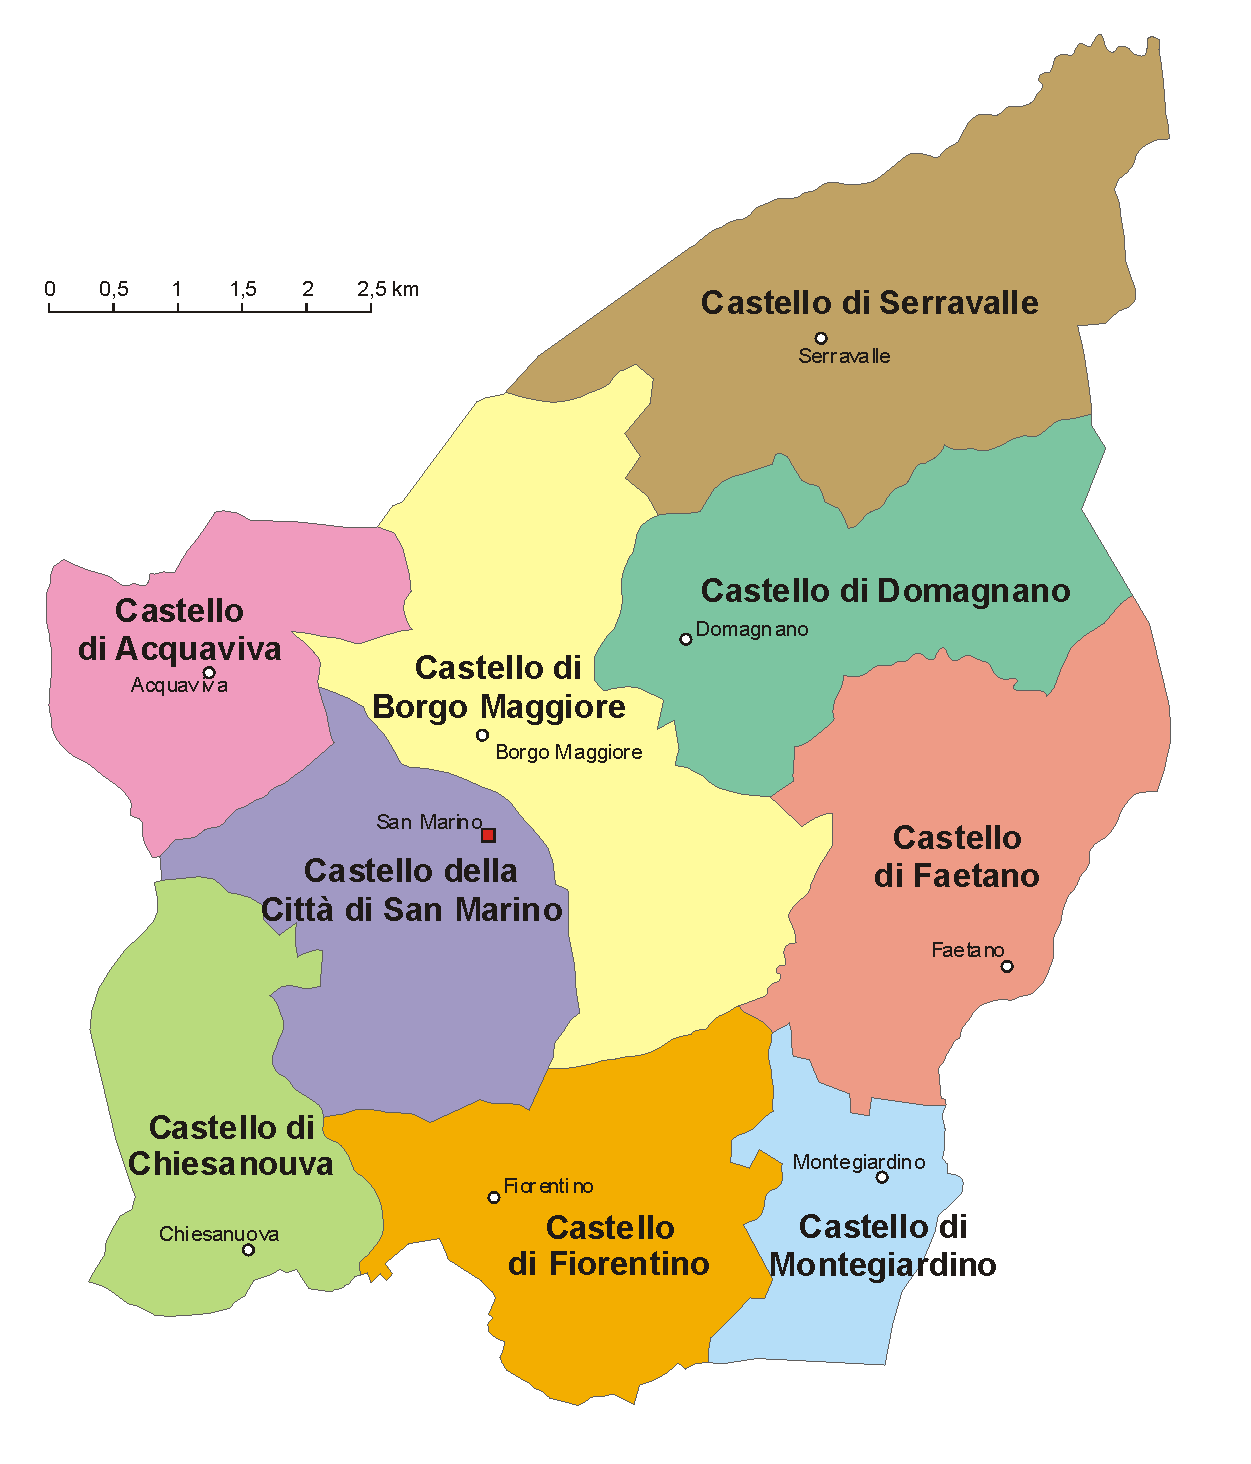 San marino wikipedia the free encyclopedia for Repubblica politica